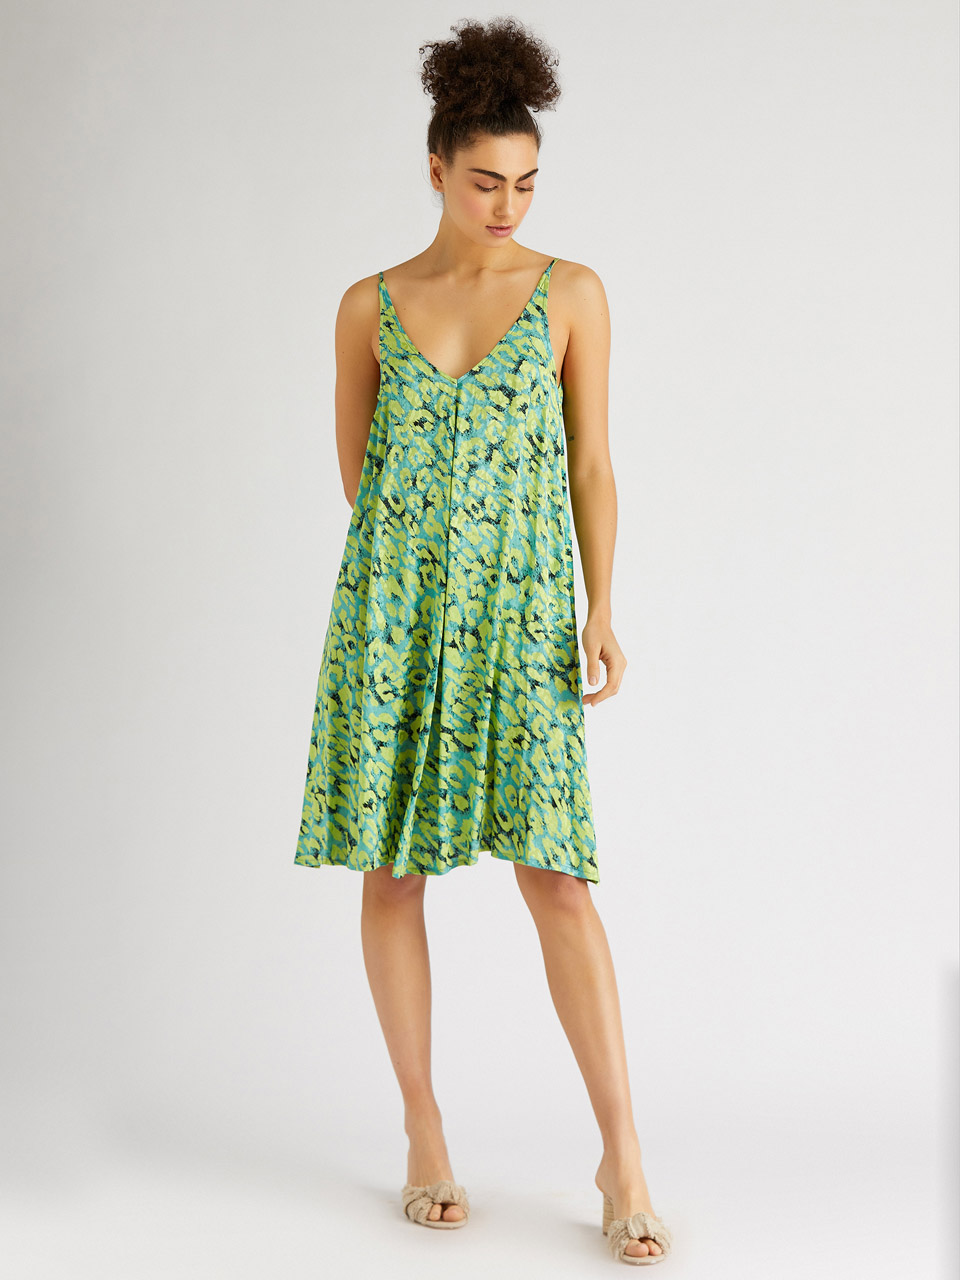 Comfortable Cut Woven Dress with Straps